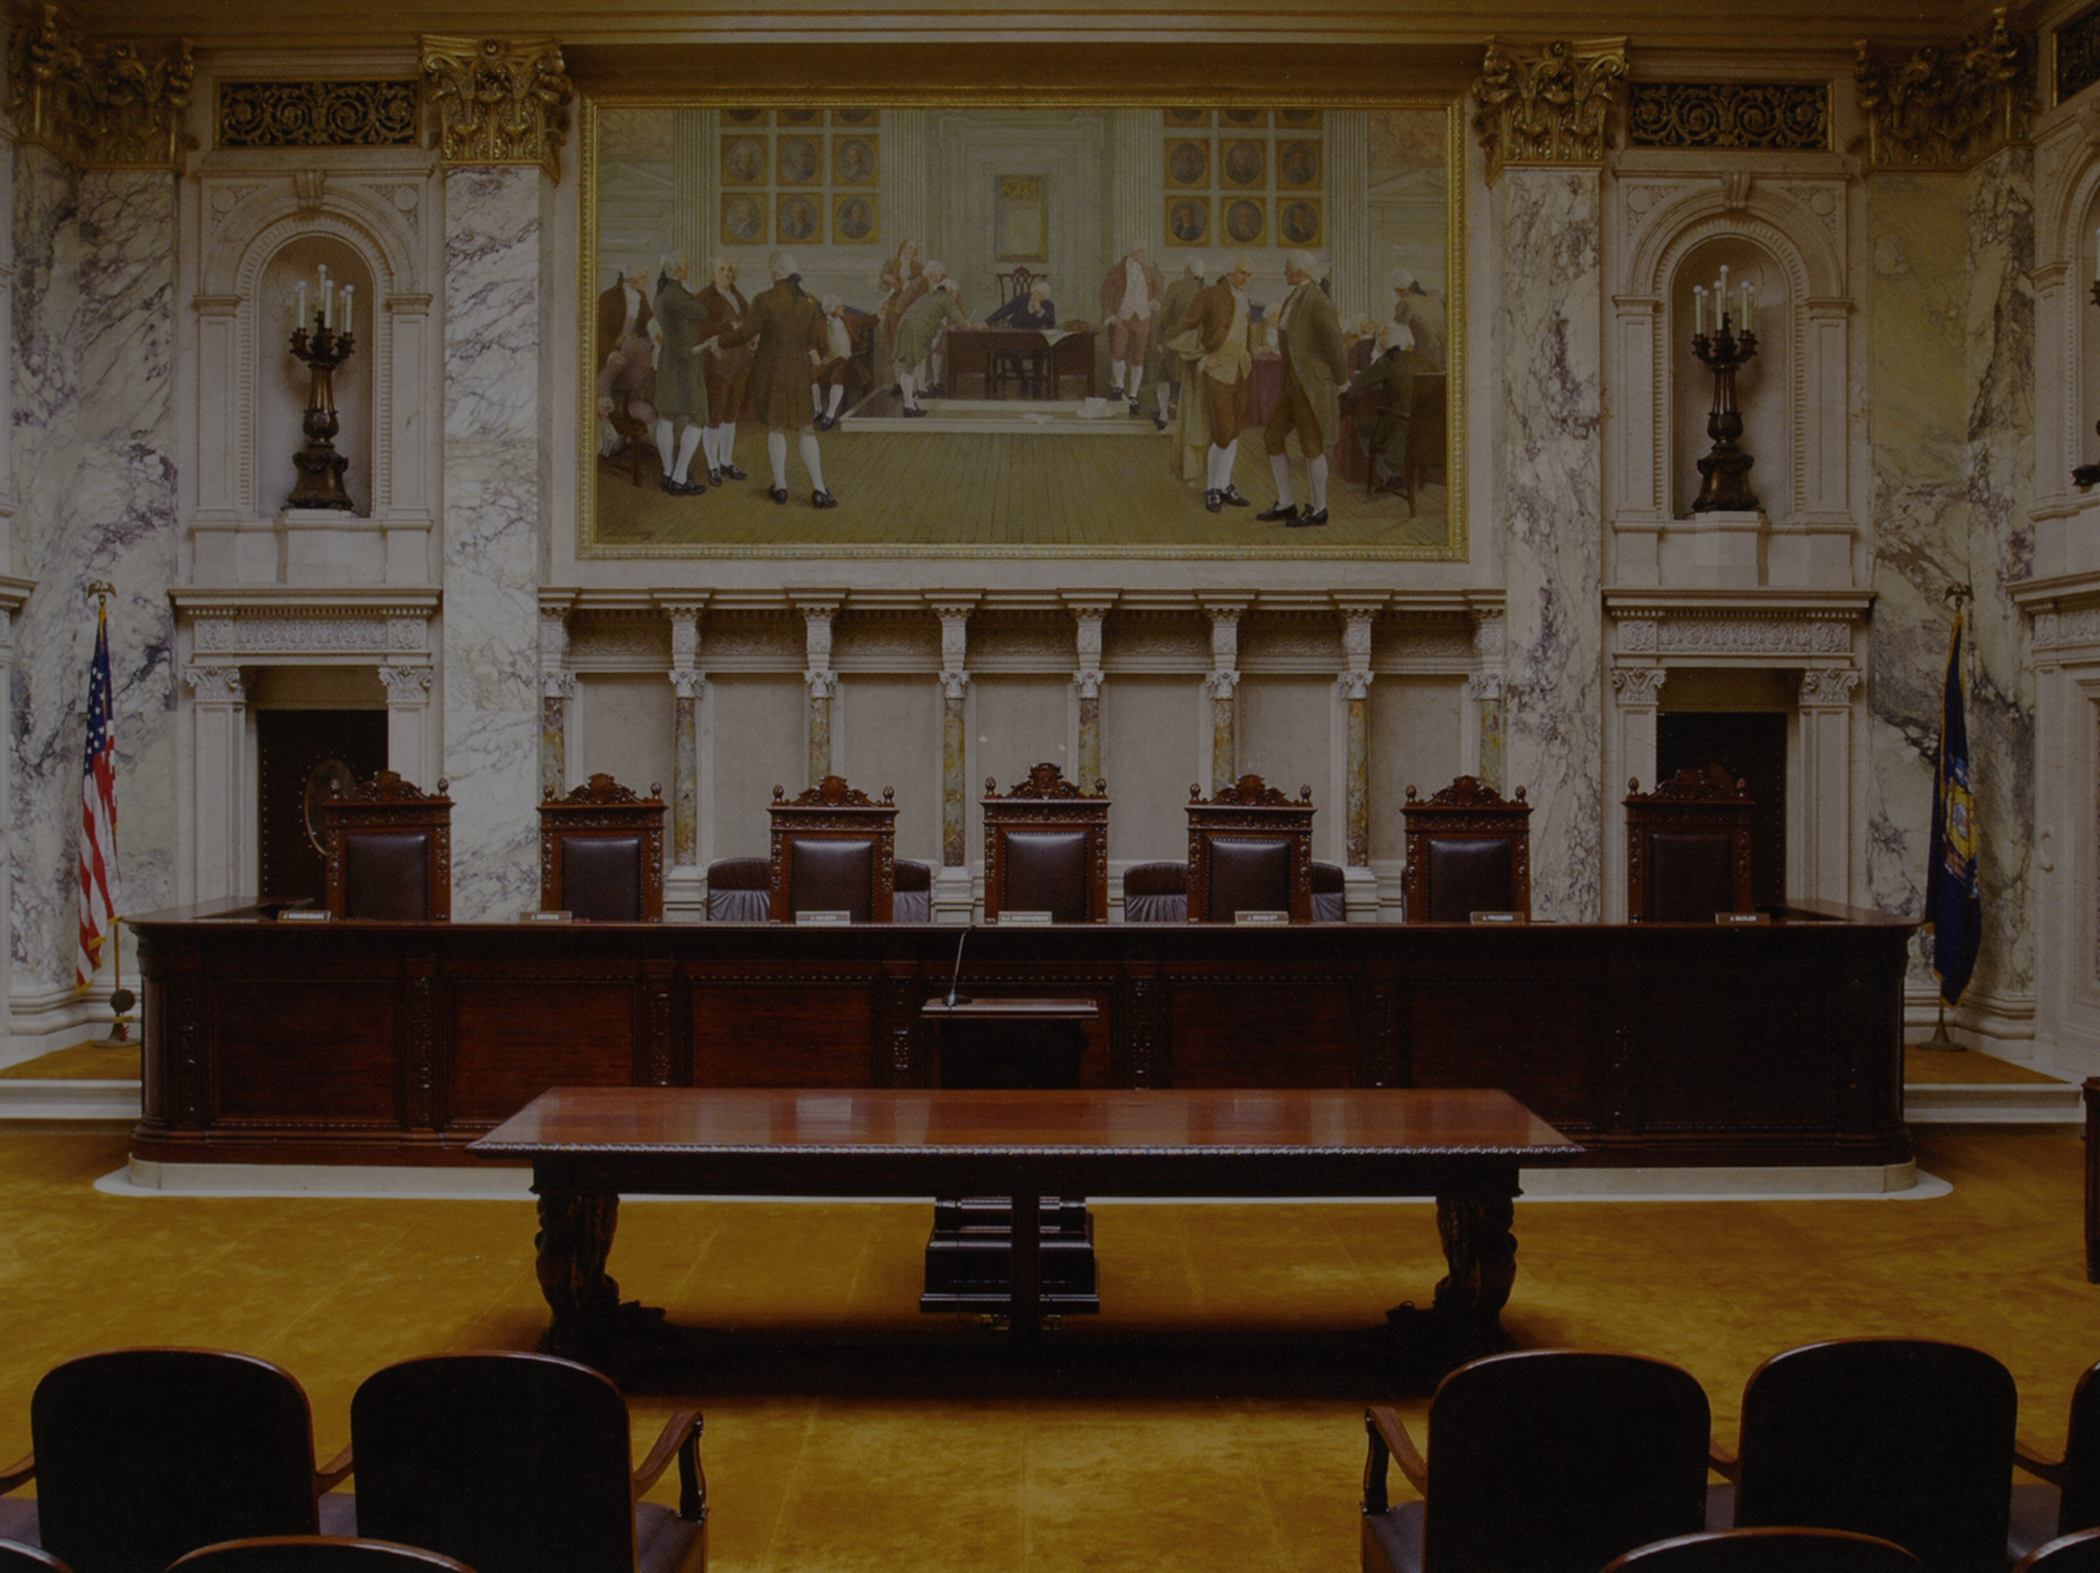 The Wisconsin Supreme Court holds the defense is permitted to present the alternative methods paragraph of the medical malpractice jury instruction in light of competing expert opinions in a complex medical malpractice case.